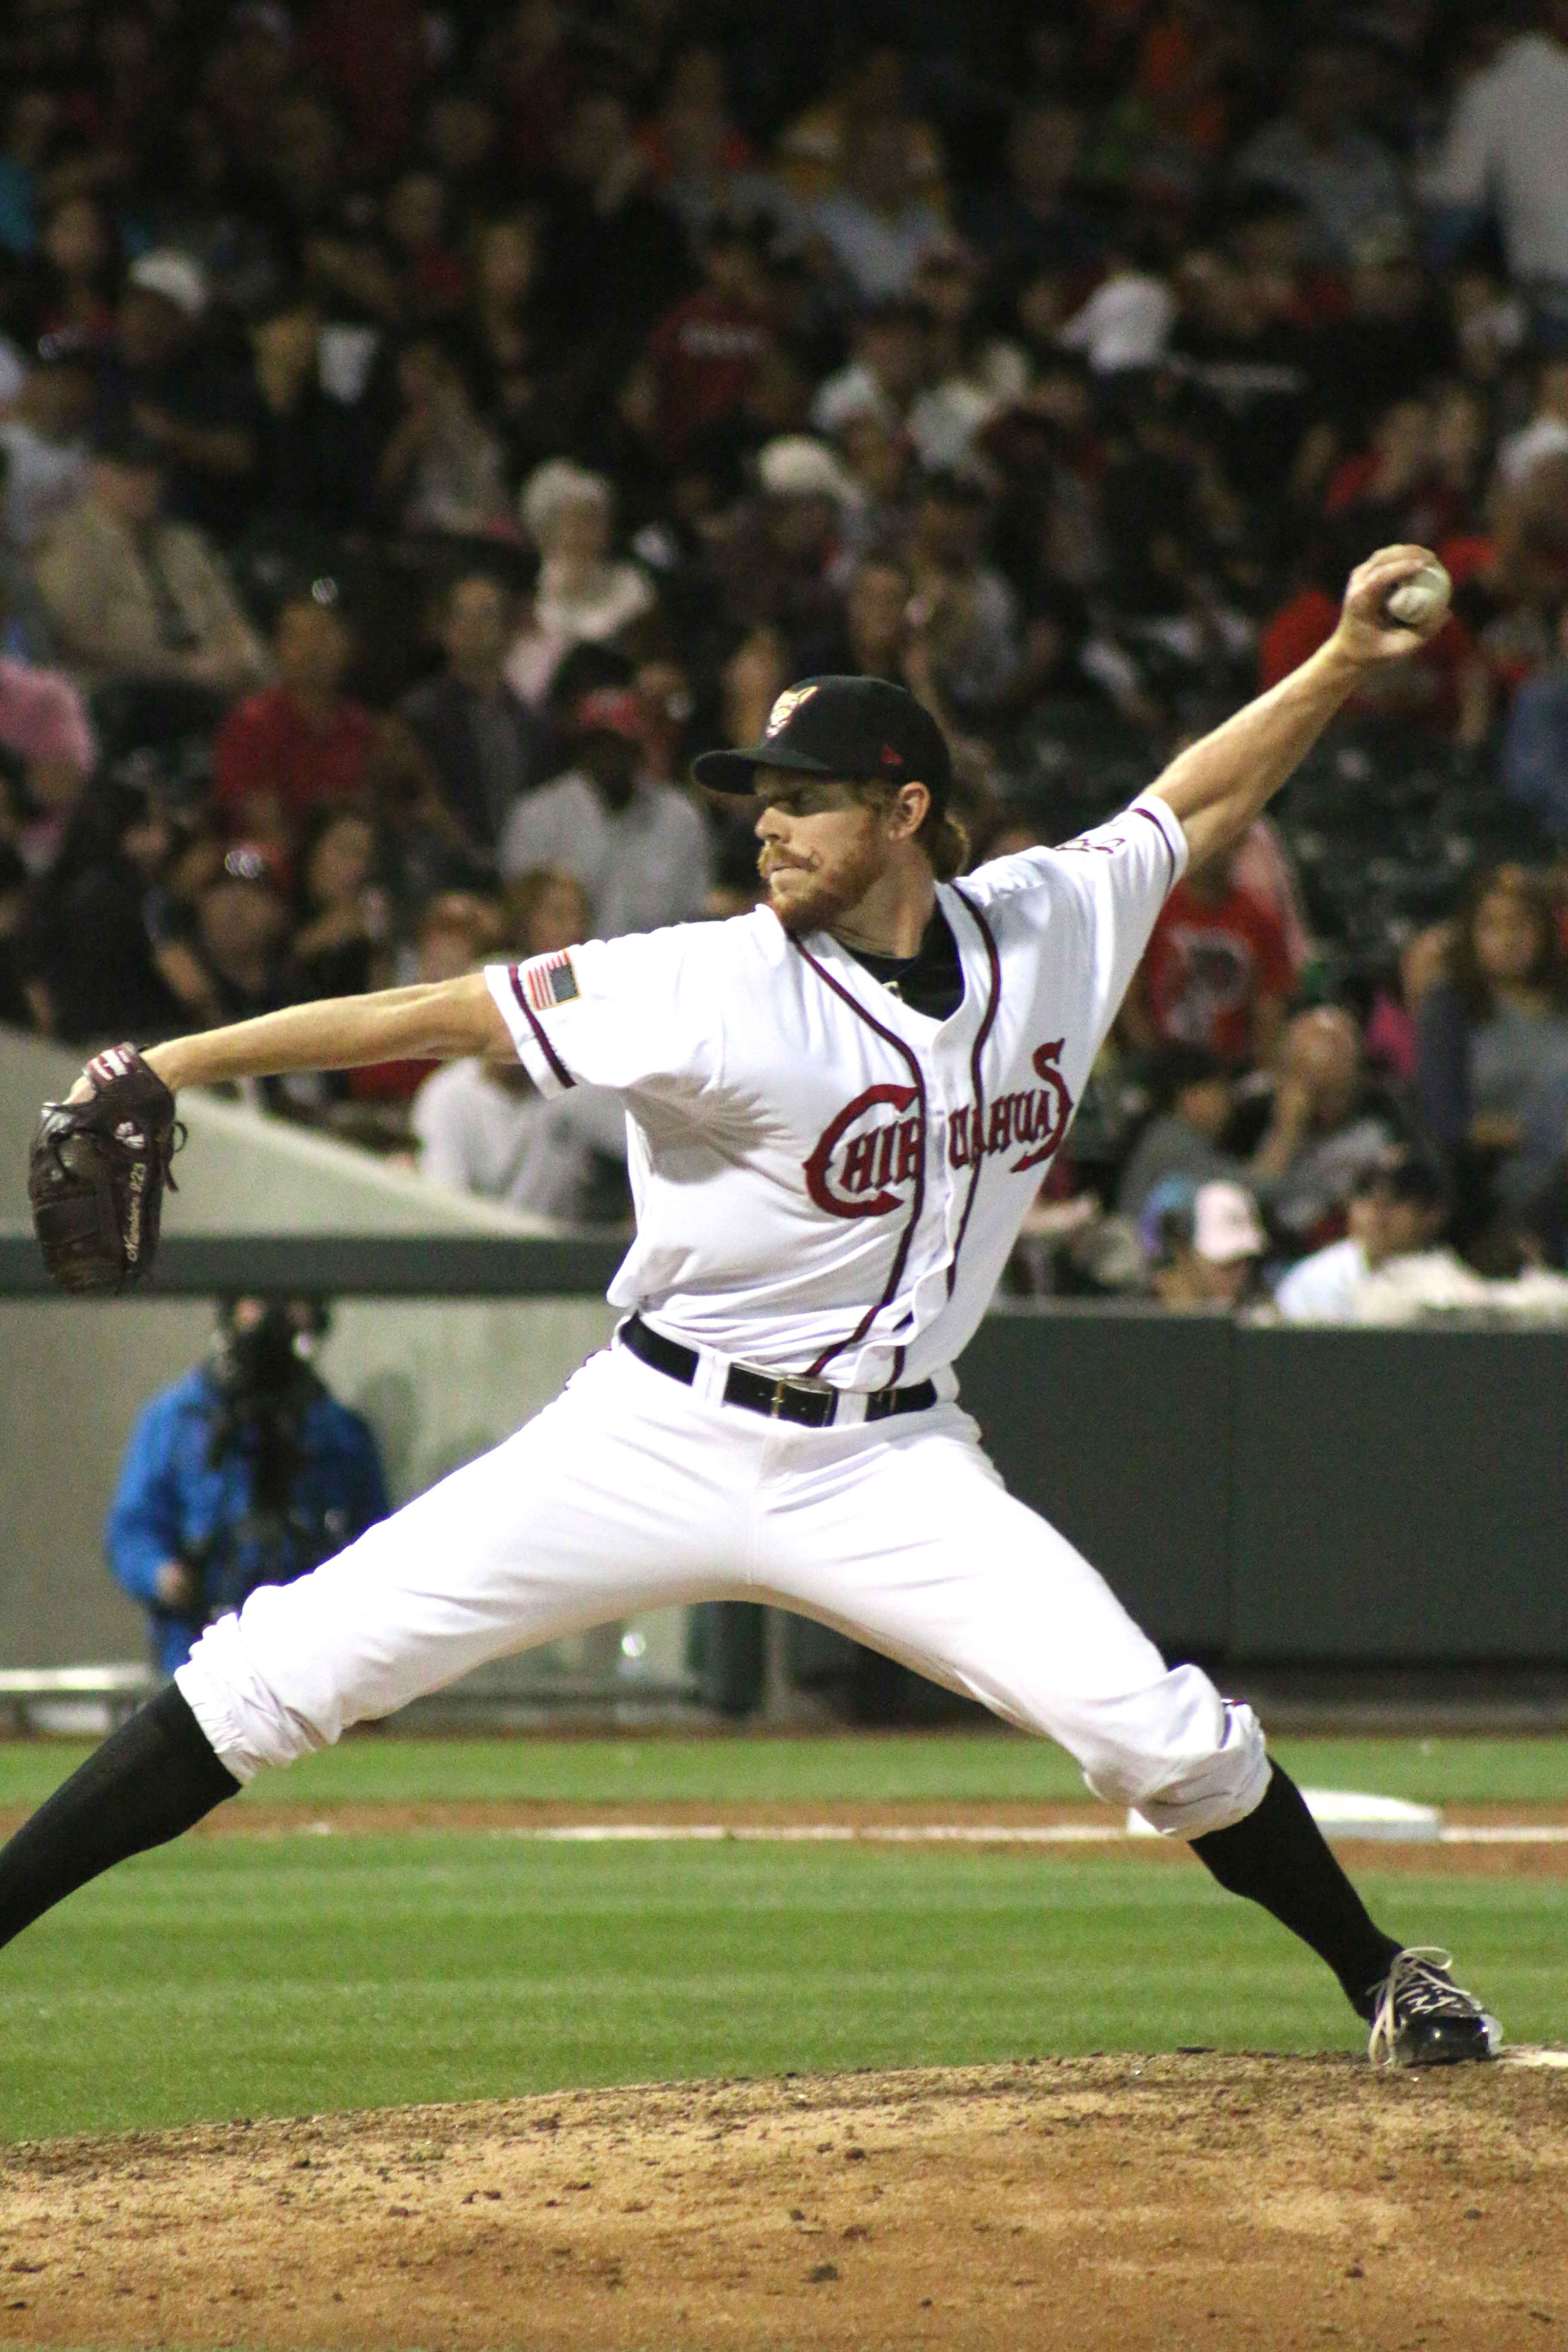 Chihuahuas pitcher Branch Kloess pitching in the seventh inning.